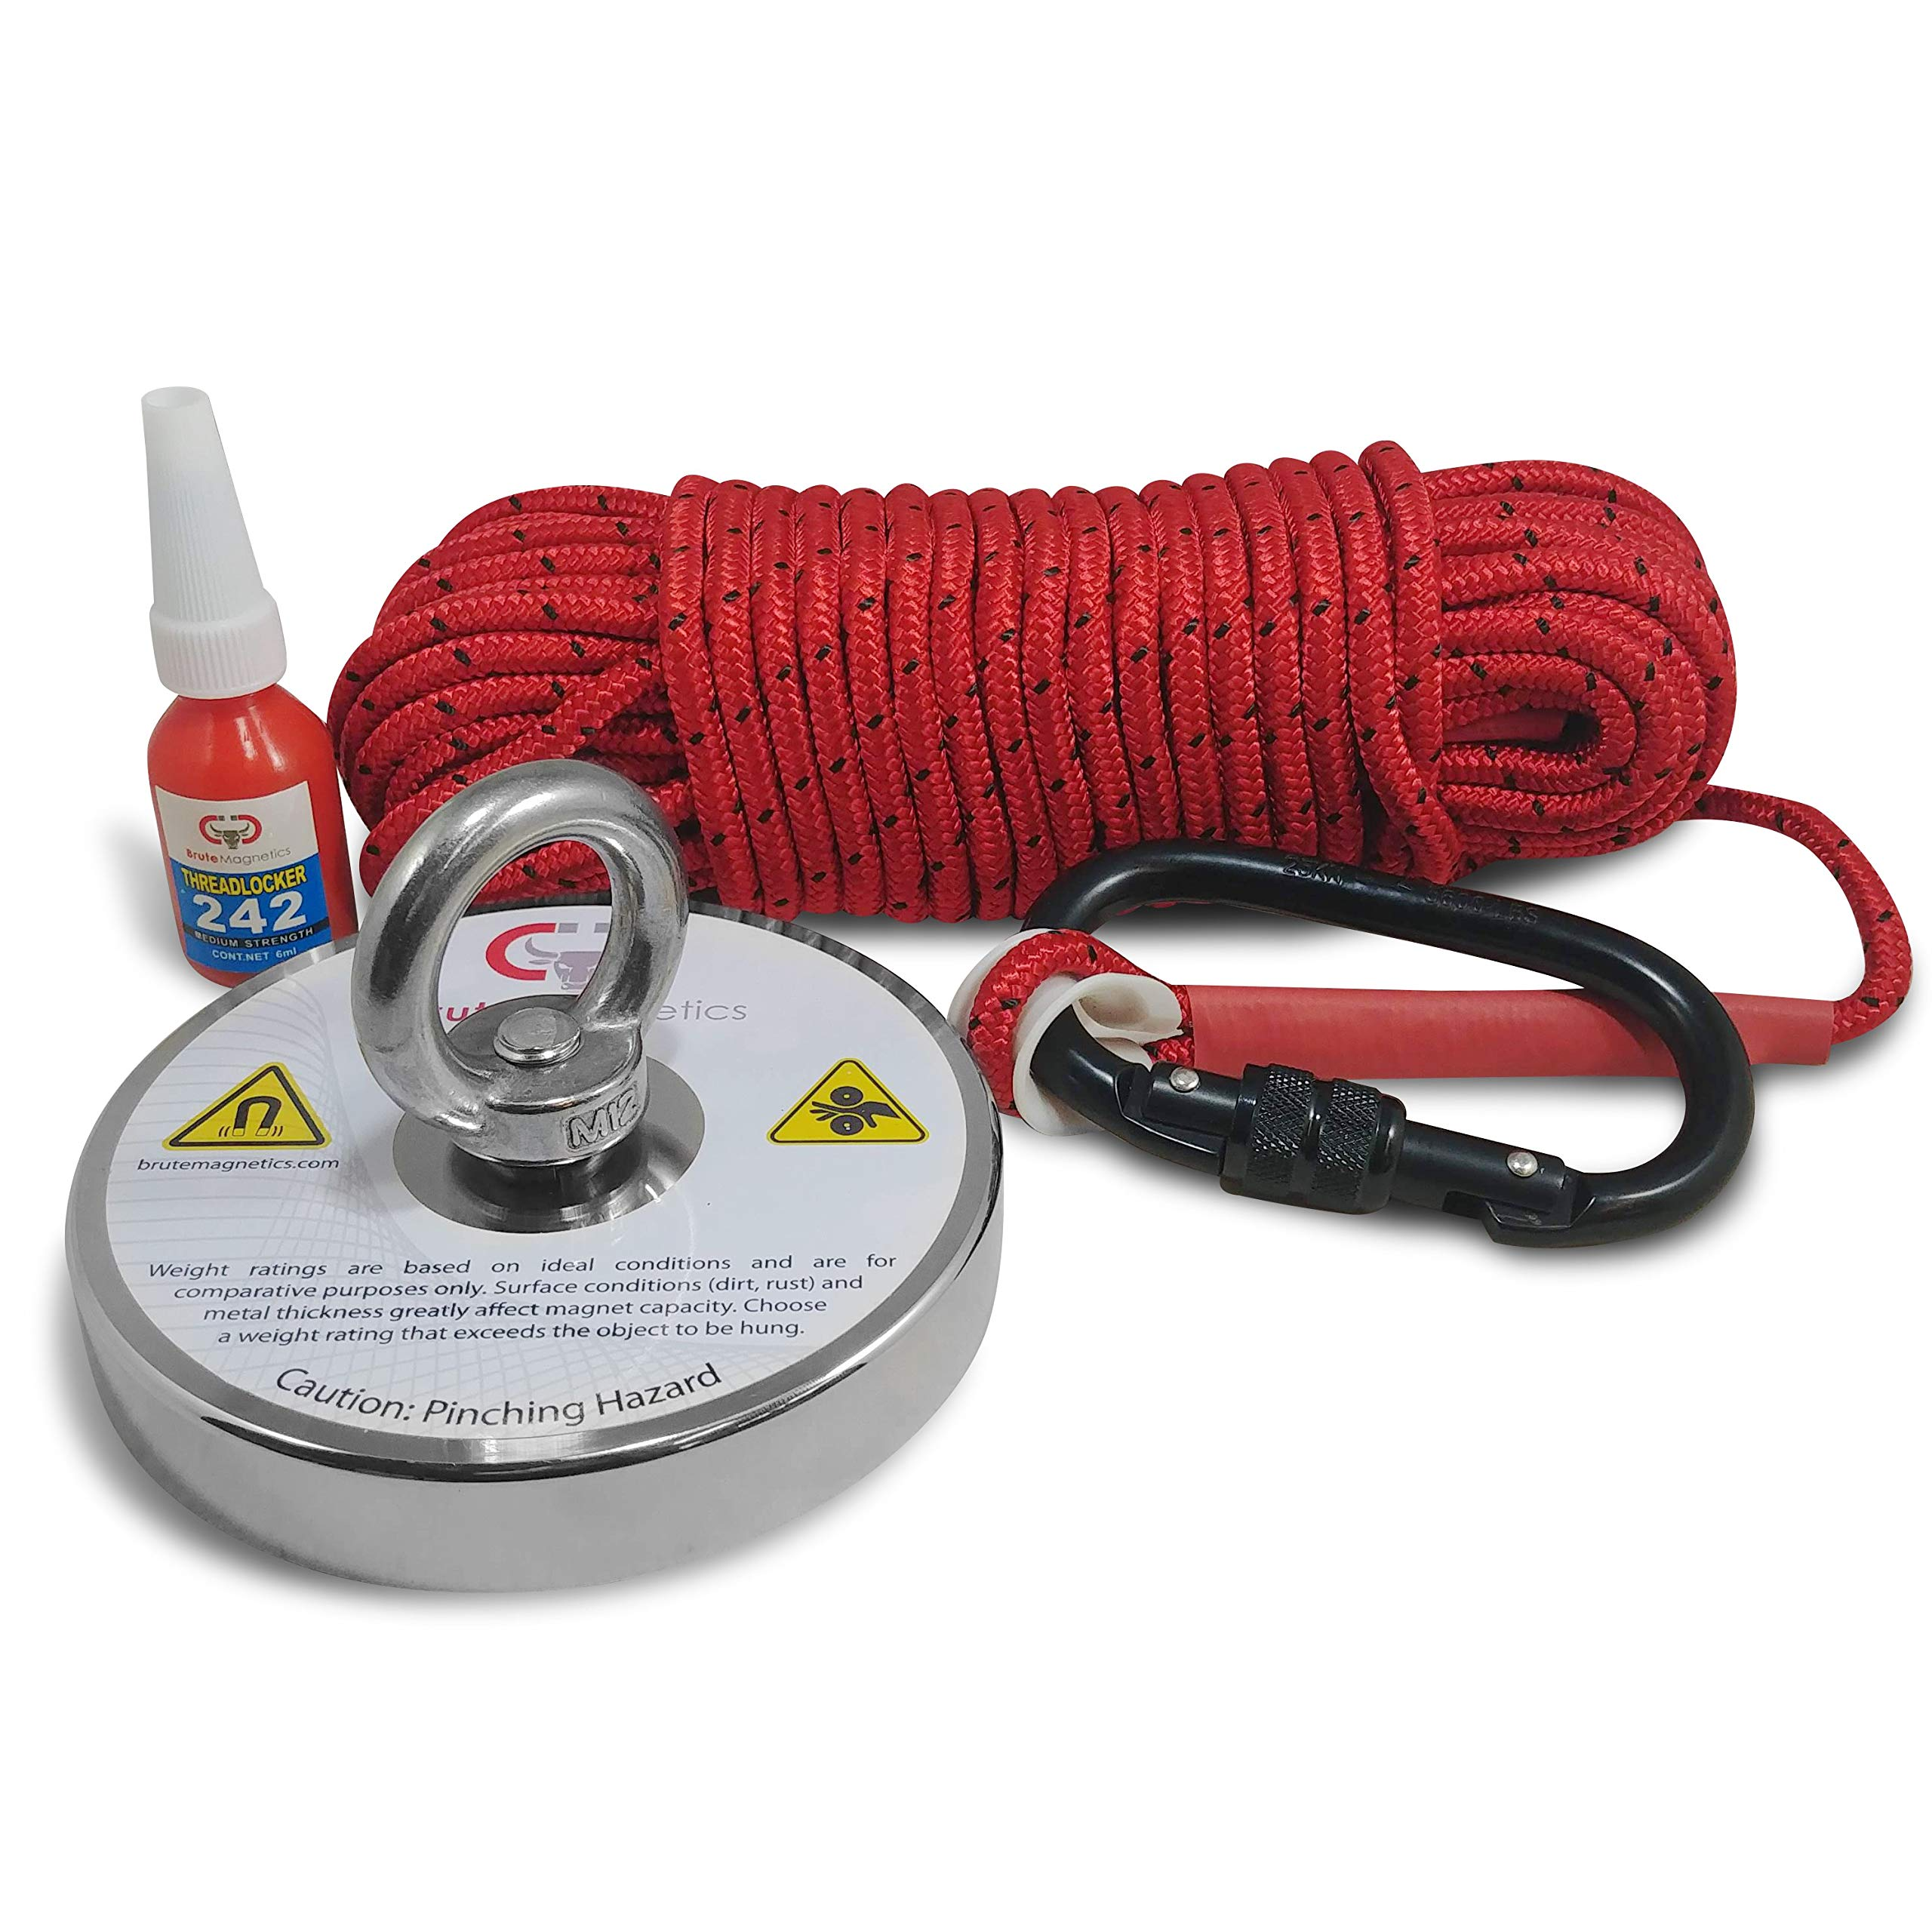 1200 LBS Magnet Fishing Bundle - Brute Magnetics Round Neodymium Fishing Magnet with Countersunk Hole and Eyebolt, 4.72'' Diameter Bundle w/ 65 feet of 1/4'' Rope + Carabiner - Includes Threadlocker